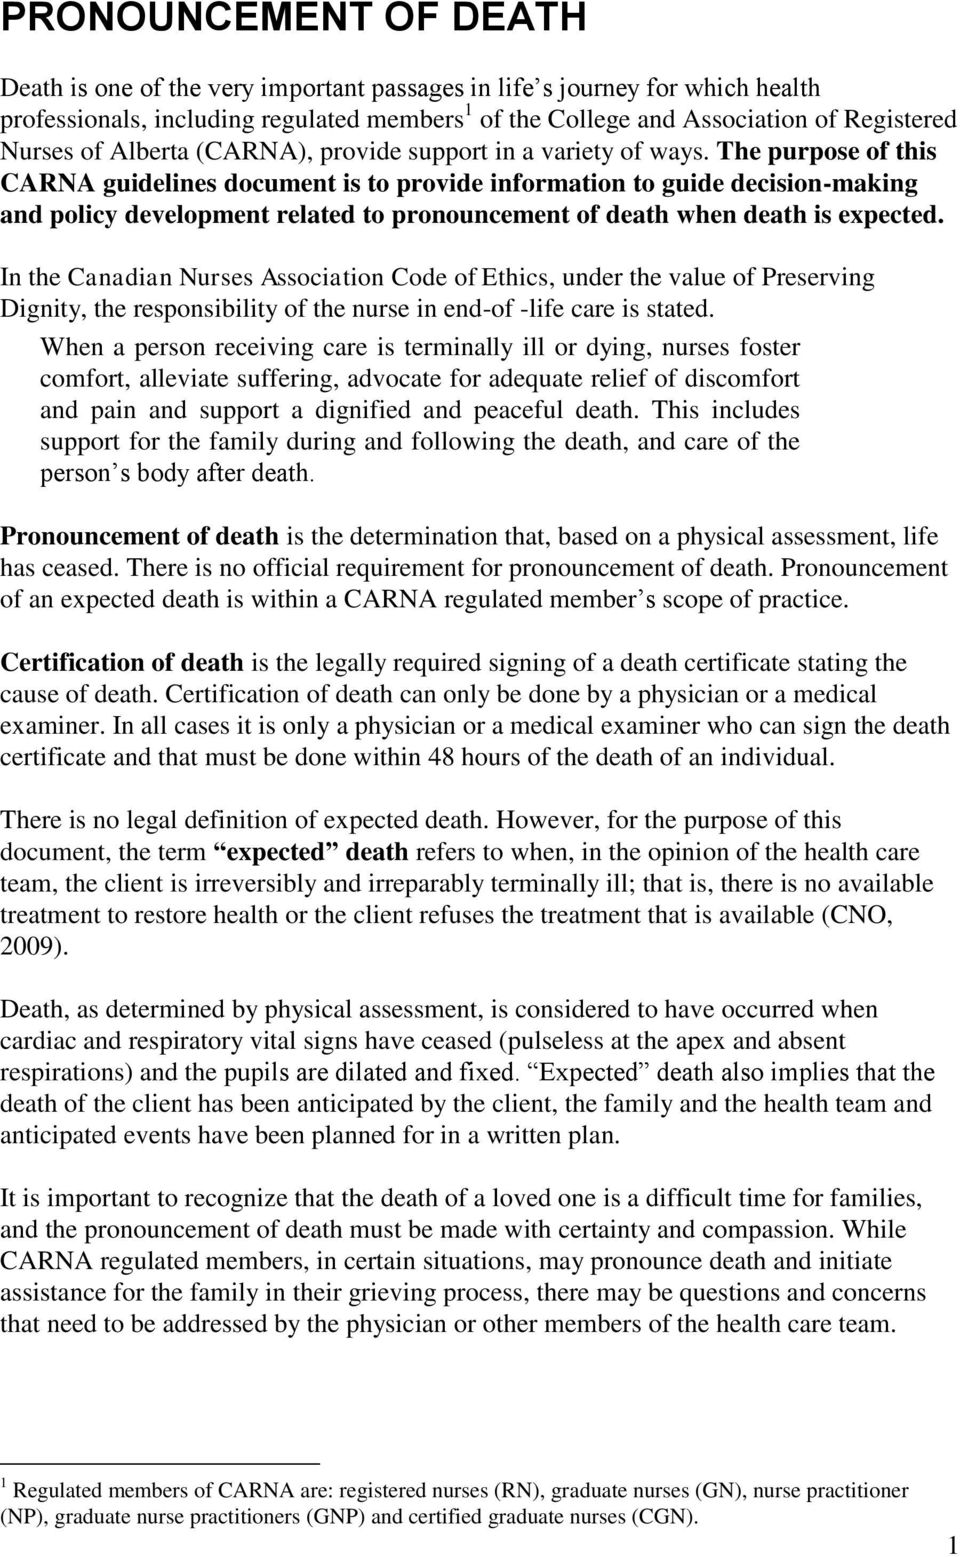 The purpose of this CARNA guidelines document is to provide information to guide decision-making and policy development related to pronouncement of death when death is expected.